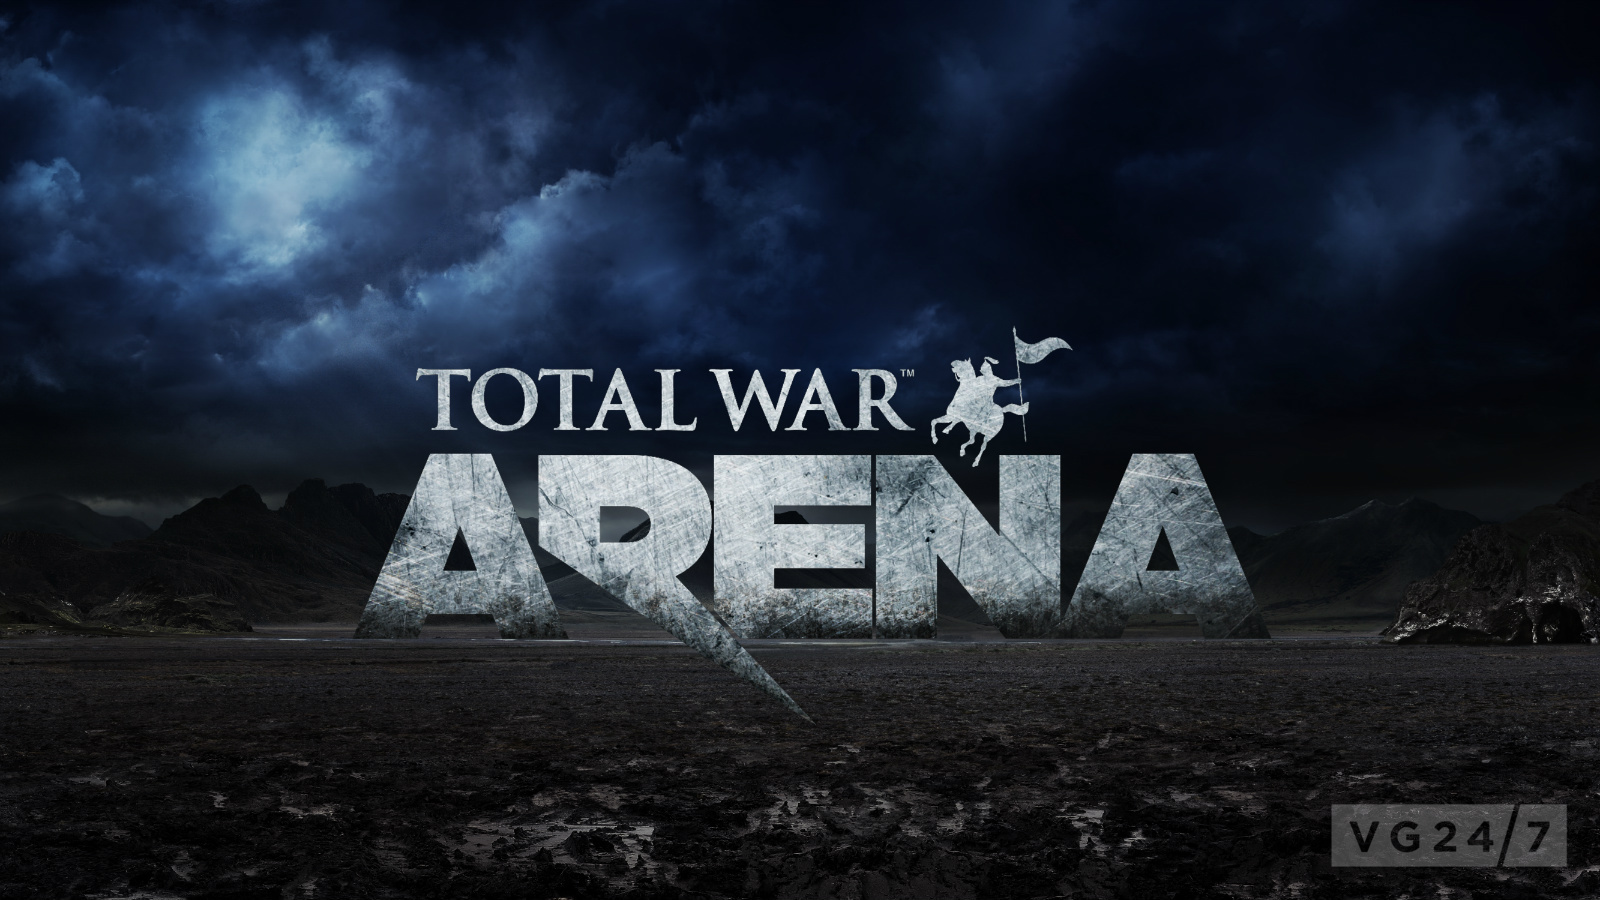 3d Pc Wallpaper Com First Look At Total War Arena Gameplay To Be Livestreamed